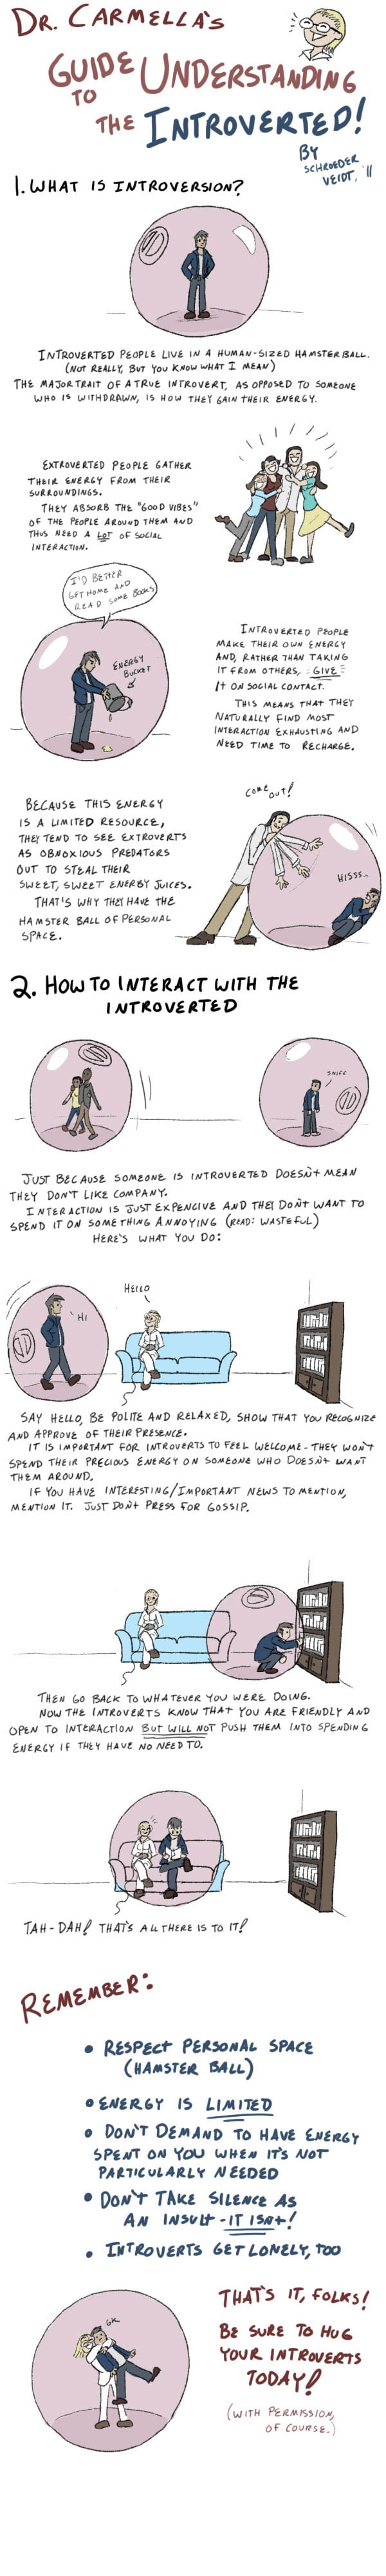 How to interact with introverts for dummies